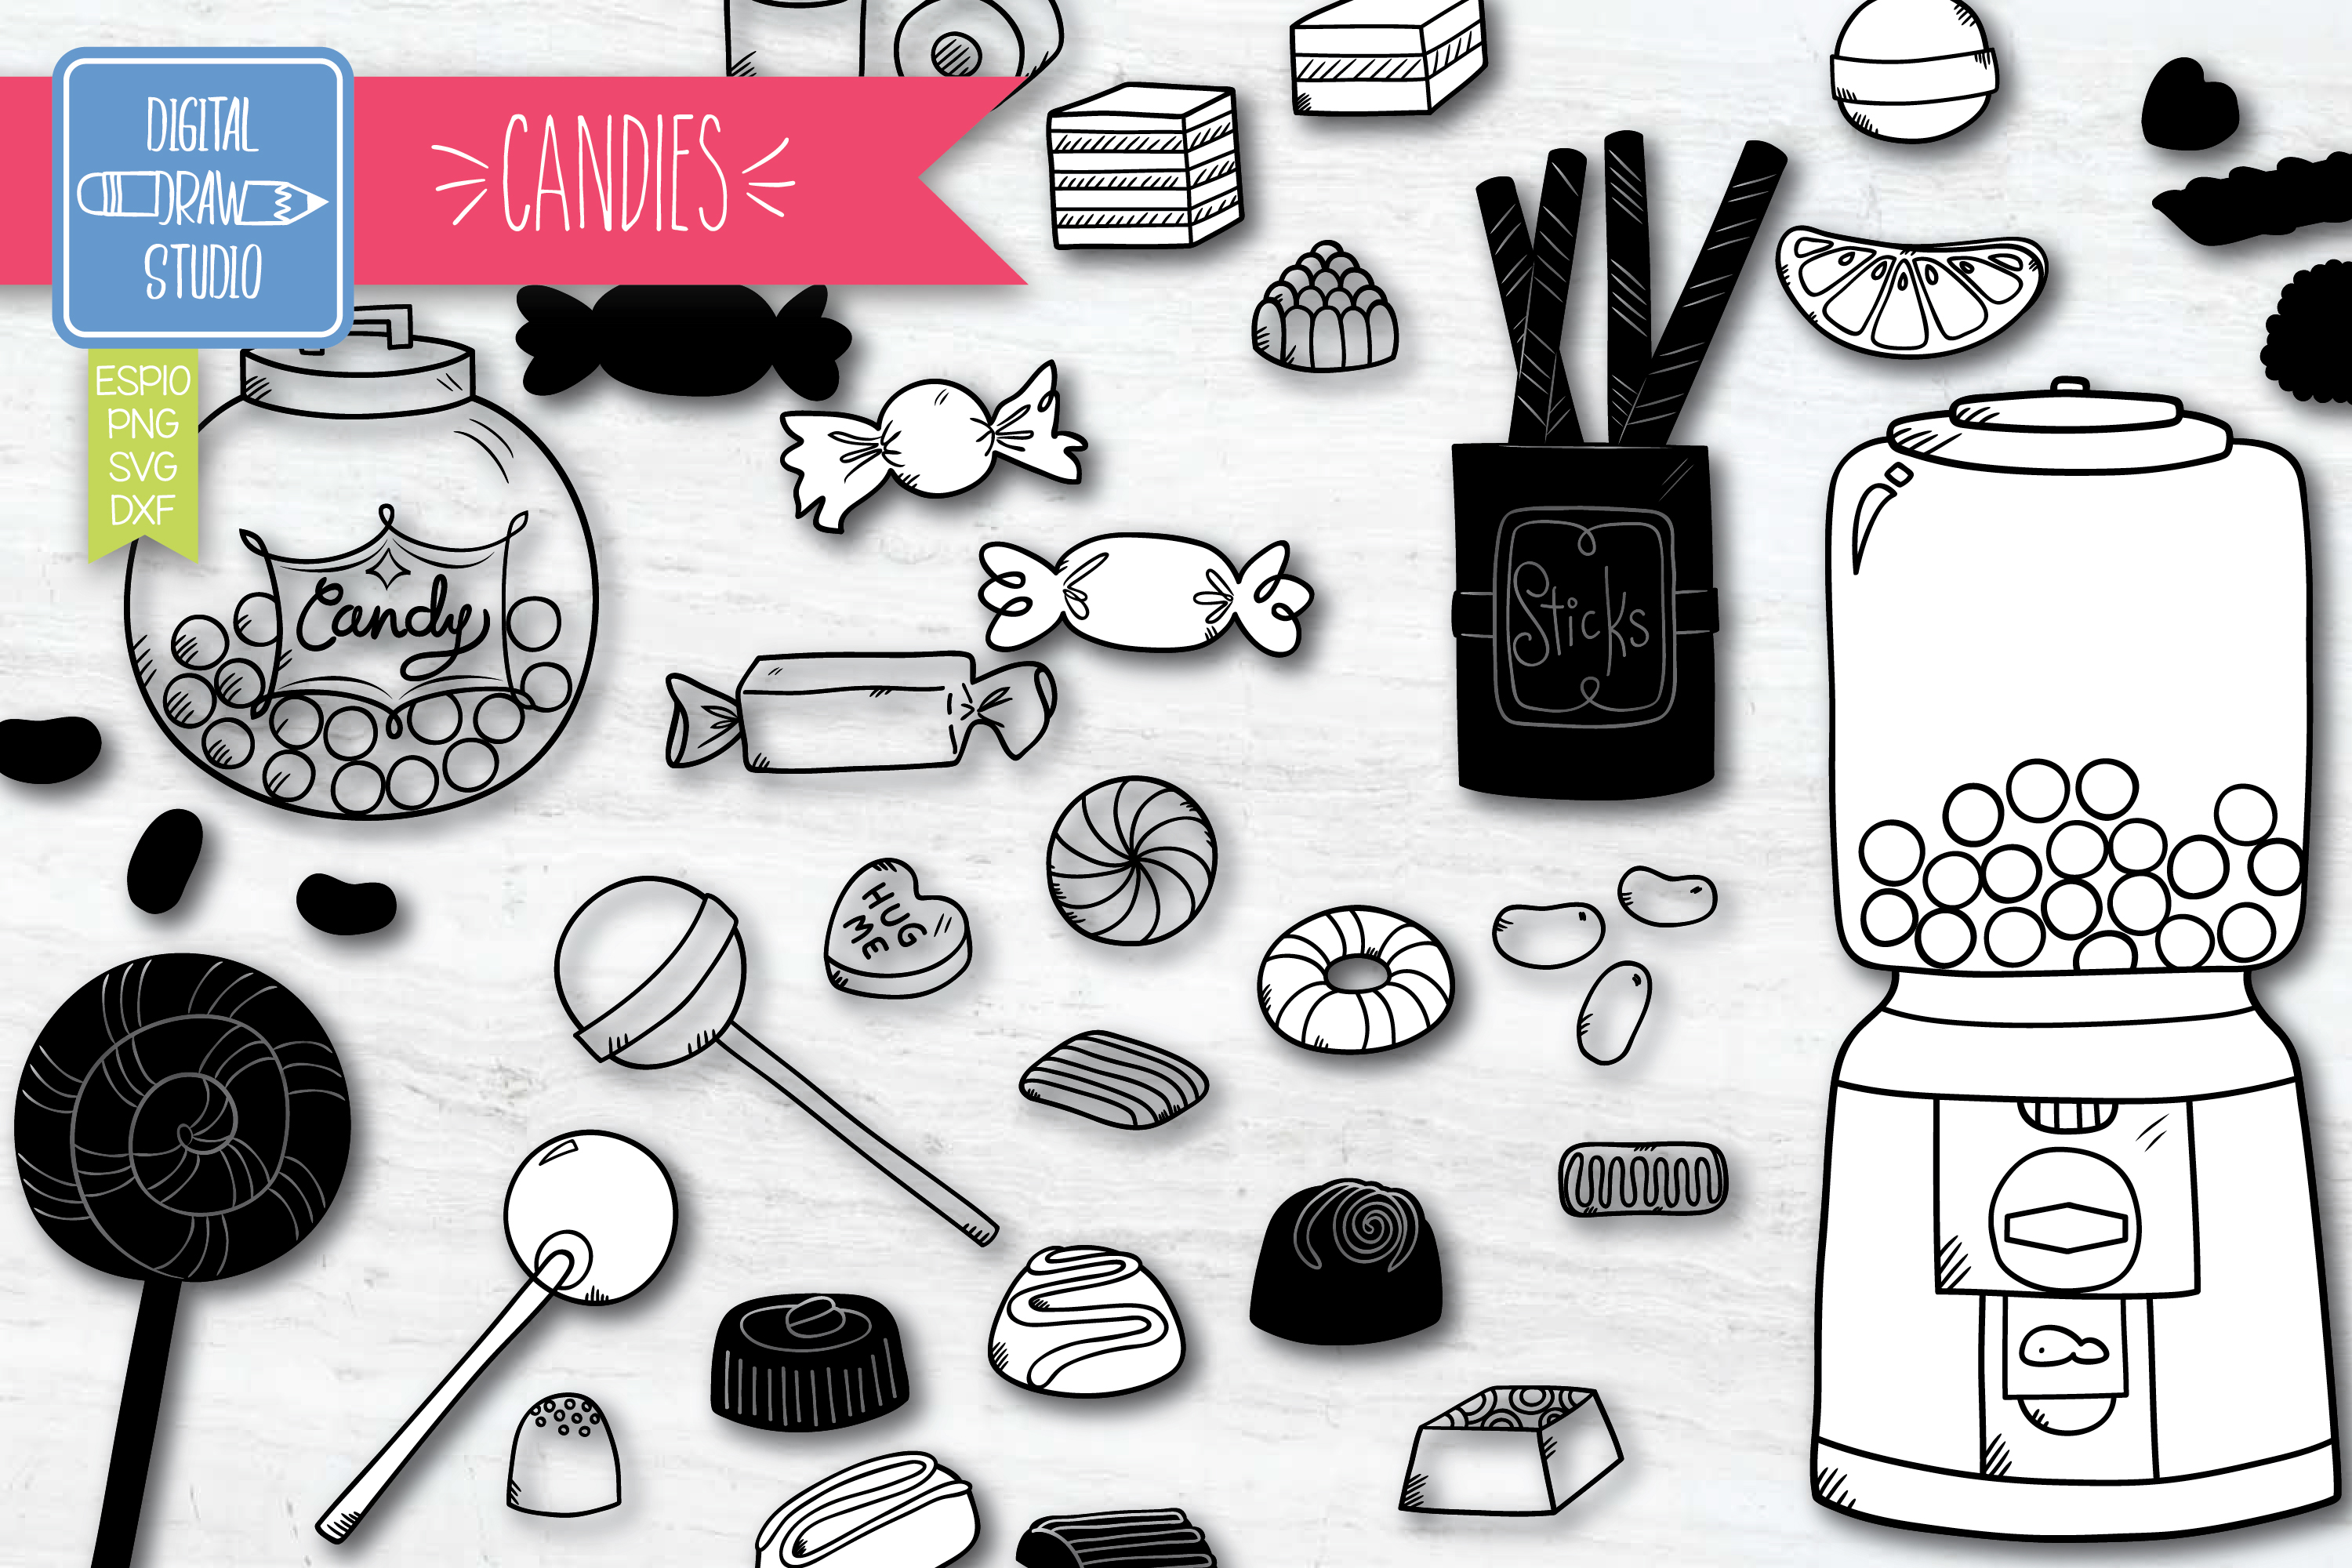 Download Free Hand Drawn Candies Vintage Sweets Graphic By Carmela Giordano for Cricut Explore, Silhouette and other cutting machines.